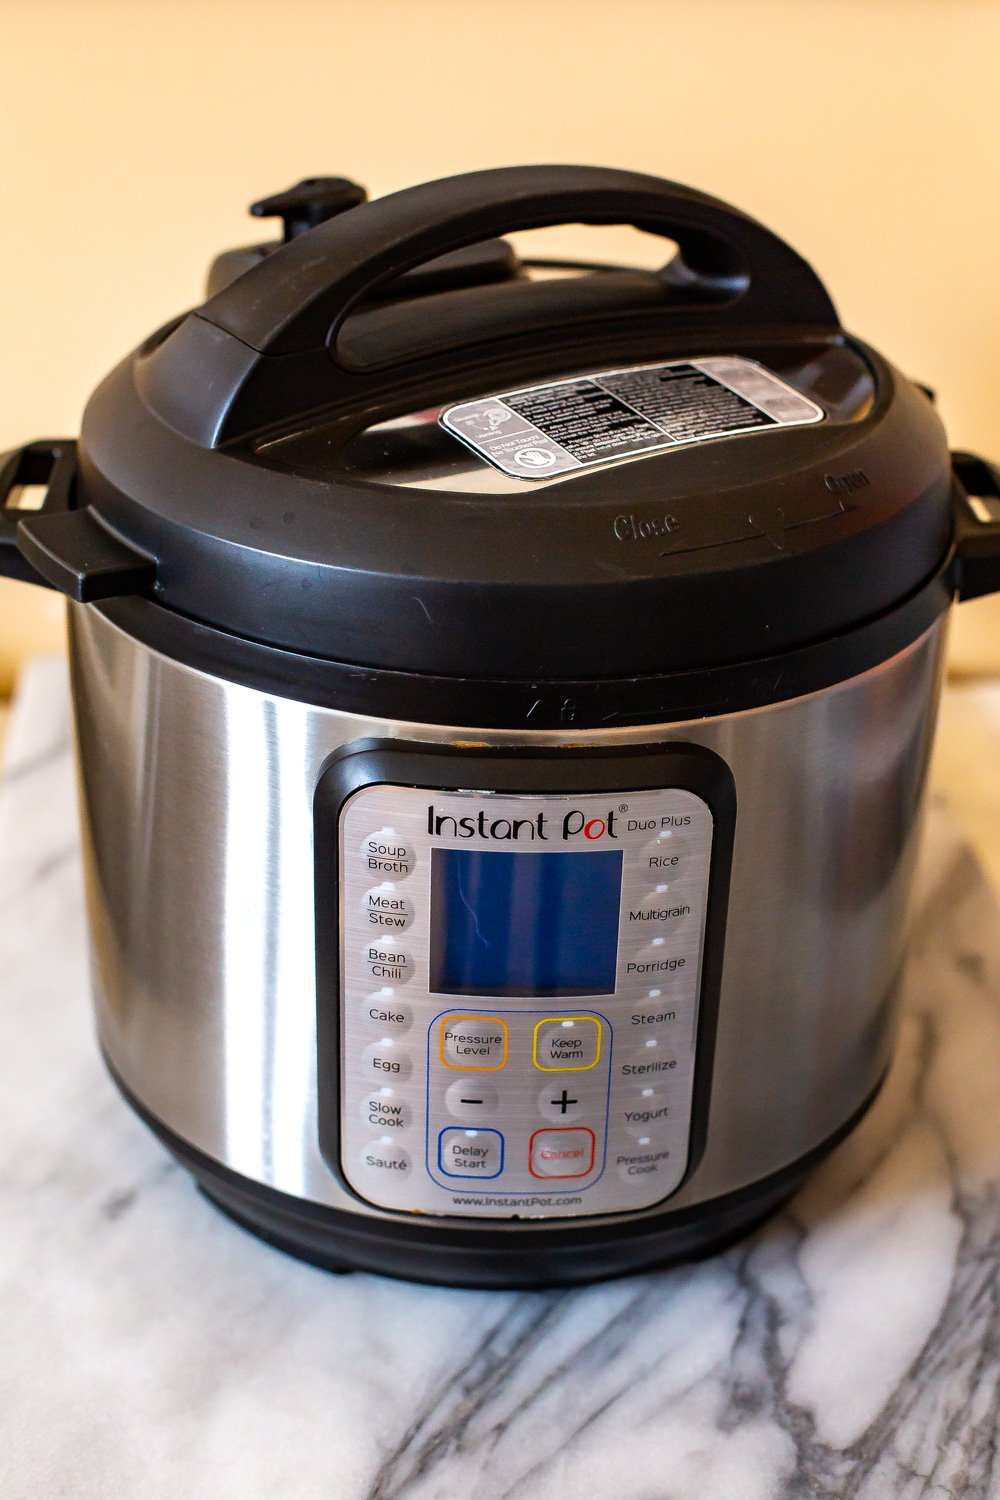 The Instant Pot: How to Use It and Why It's Worth All The Hype